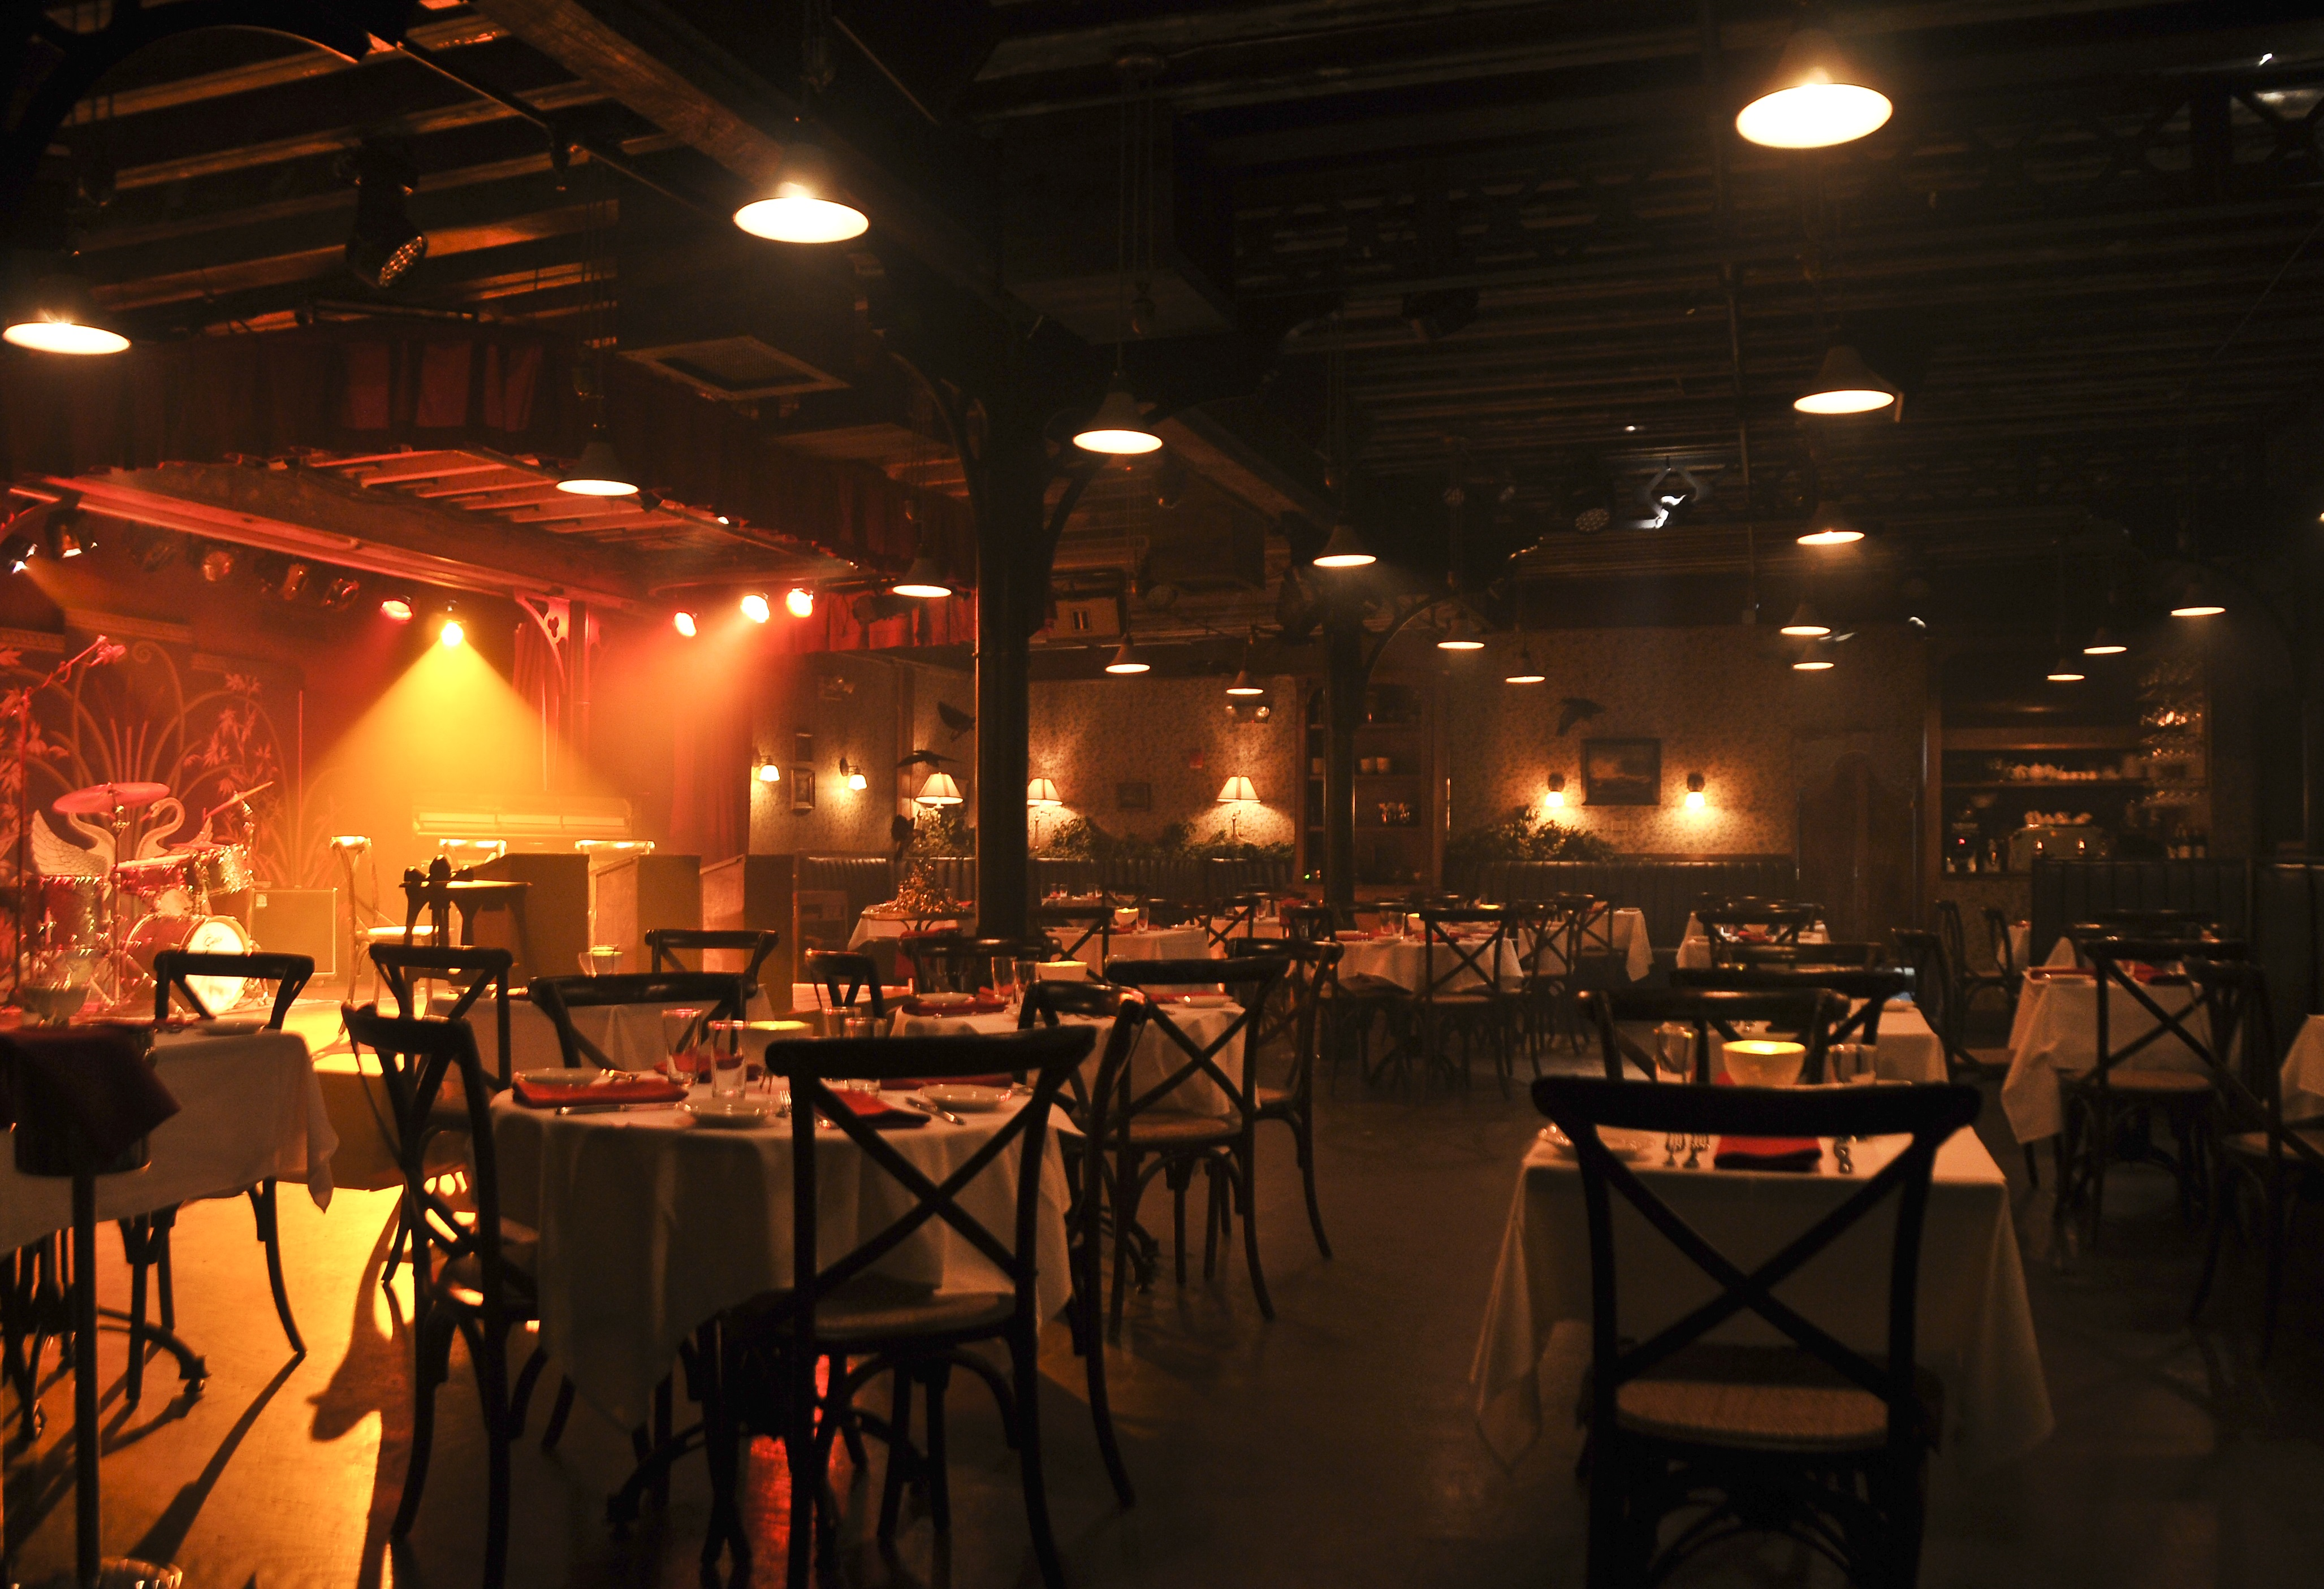 Live performances and fine dining are commonplace at The Heath.